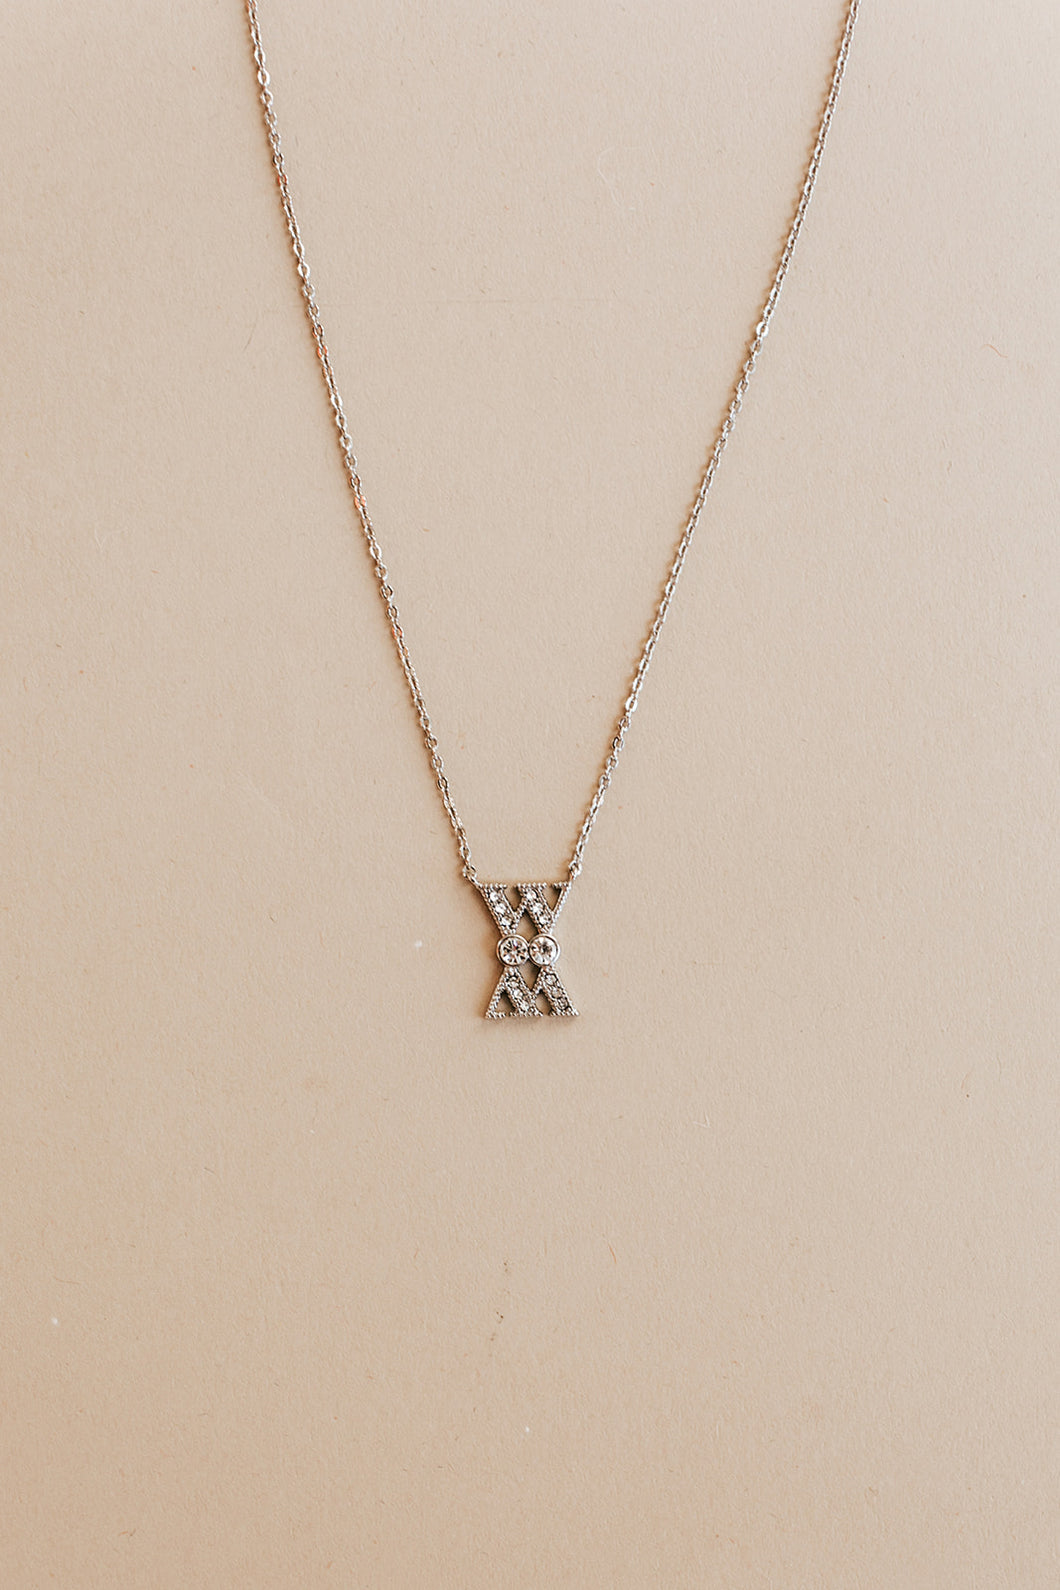 WM necklace | silver